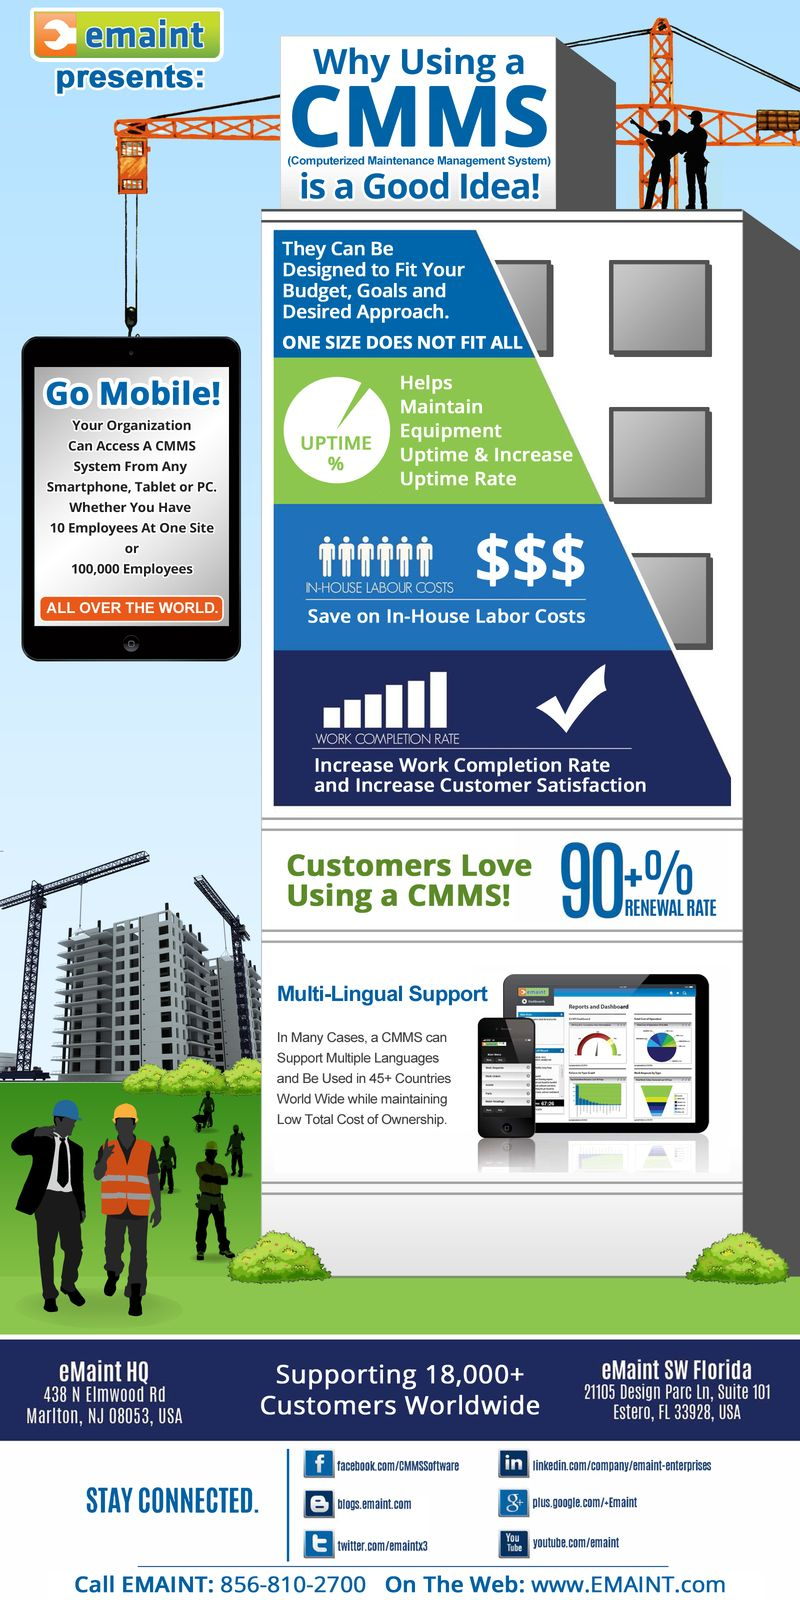 Emaint2-infographic